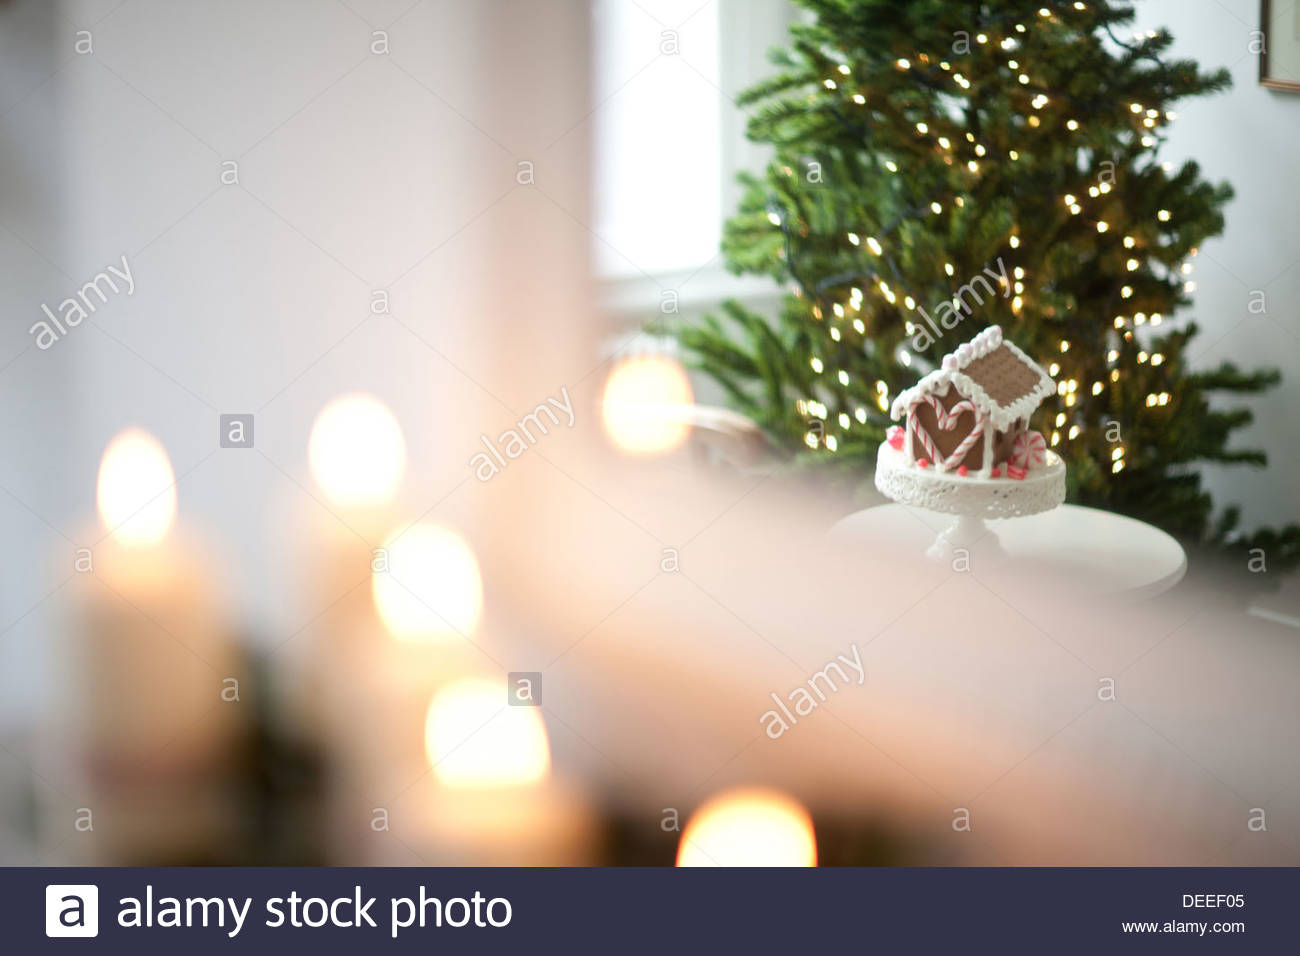 Blur candles lit on mantelpiece - Stock Image